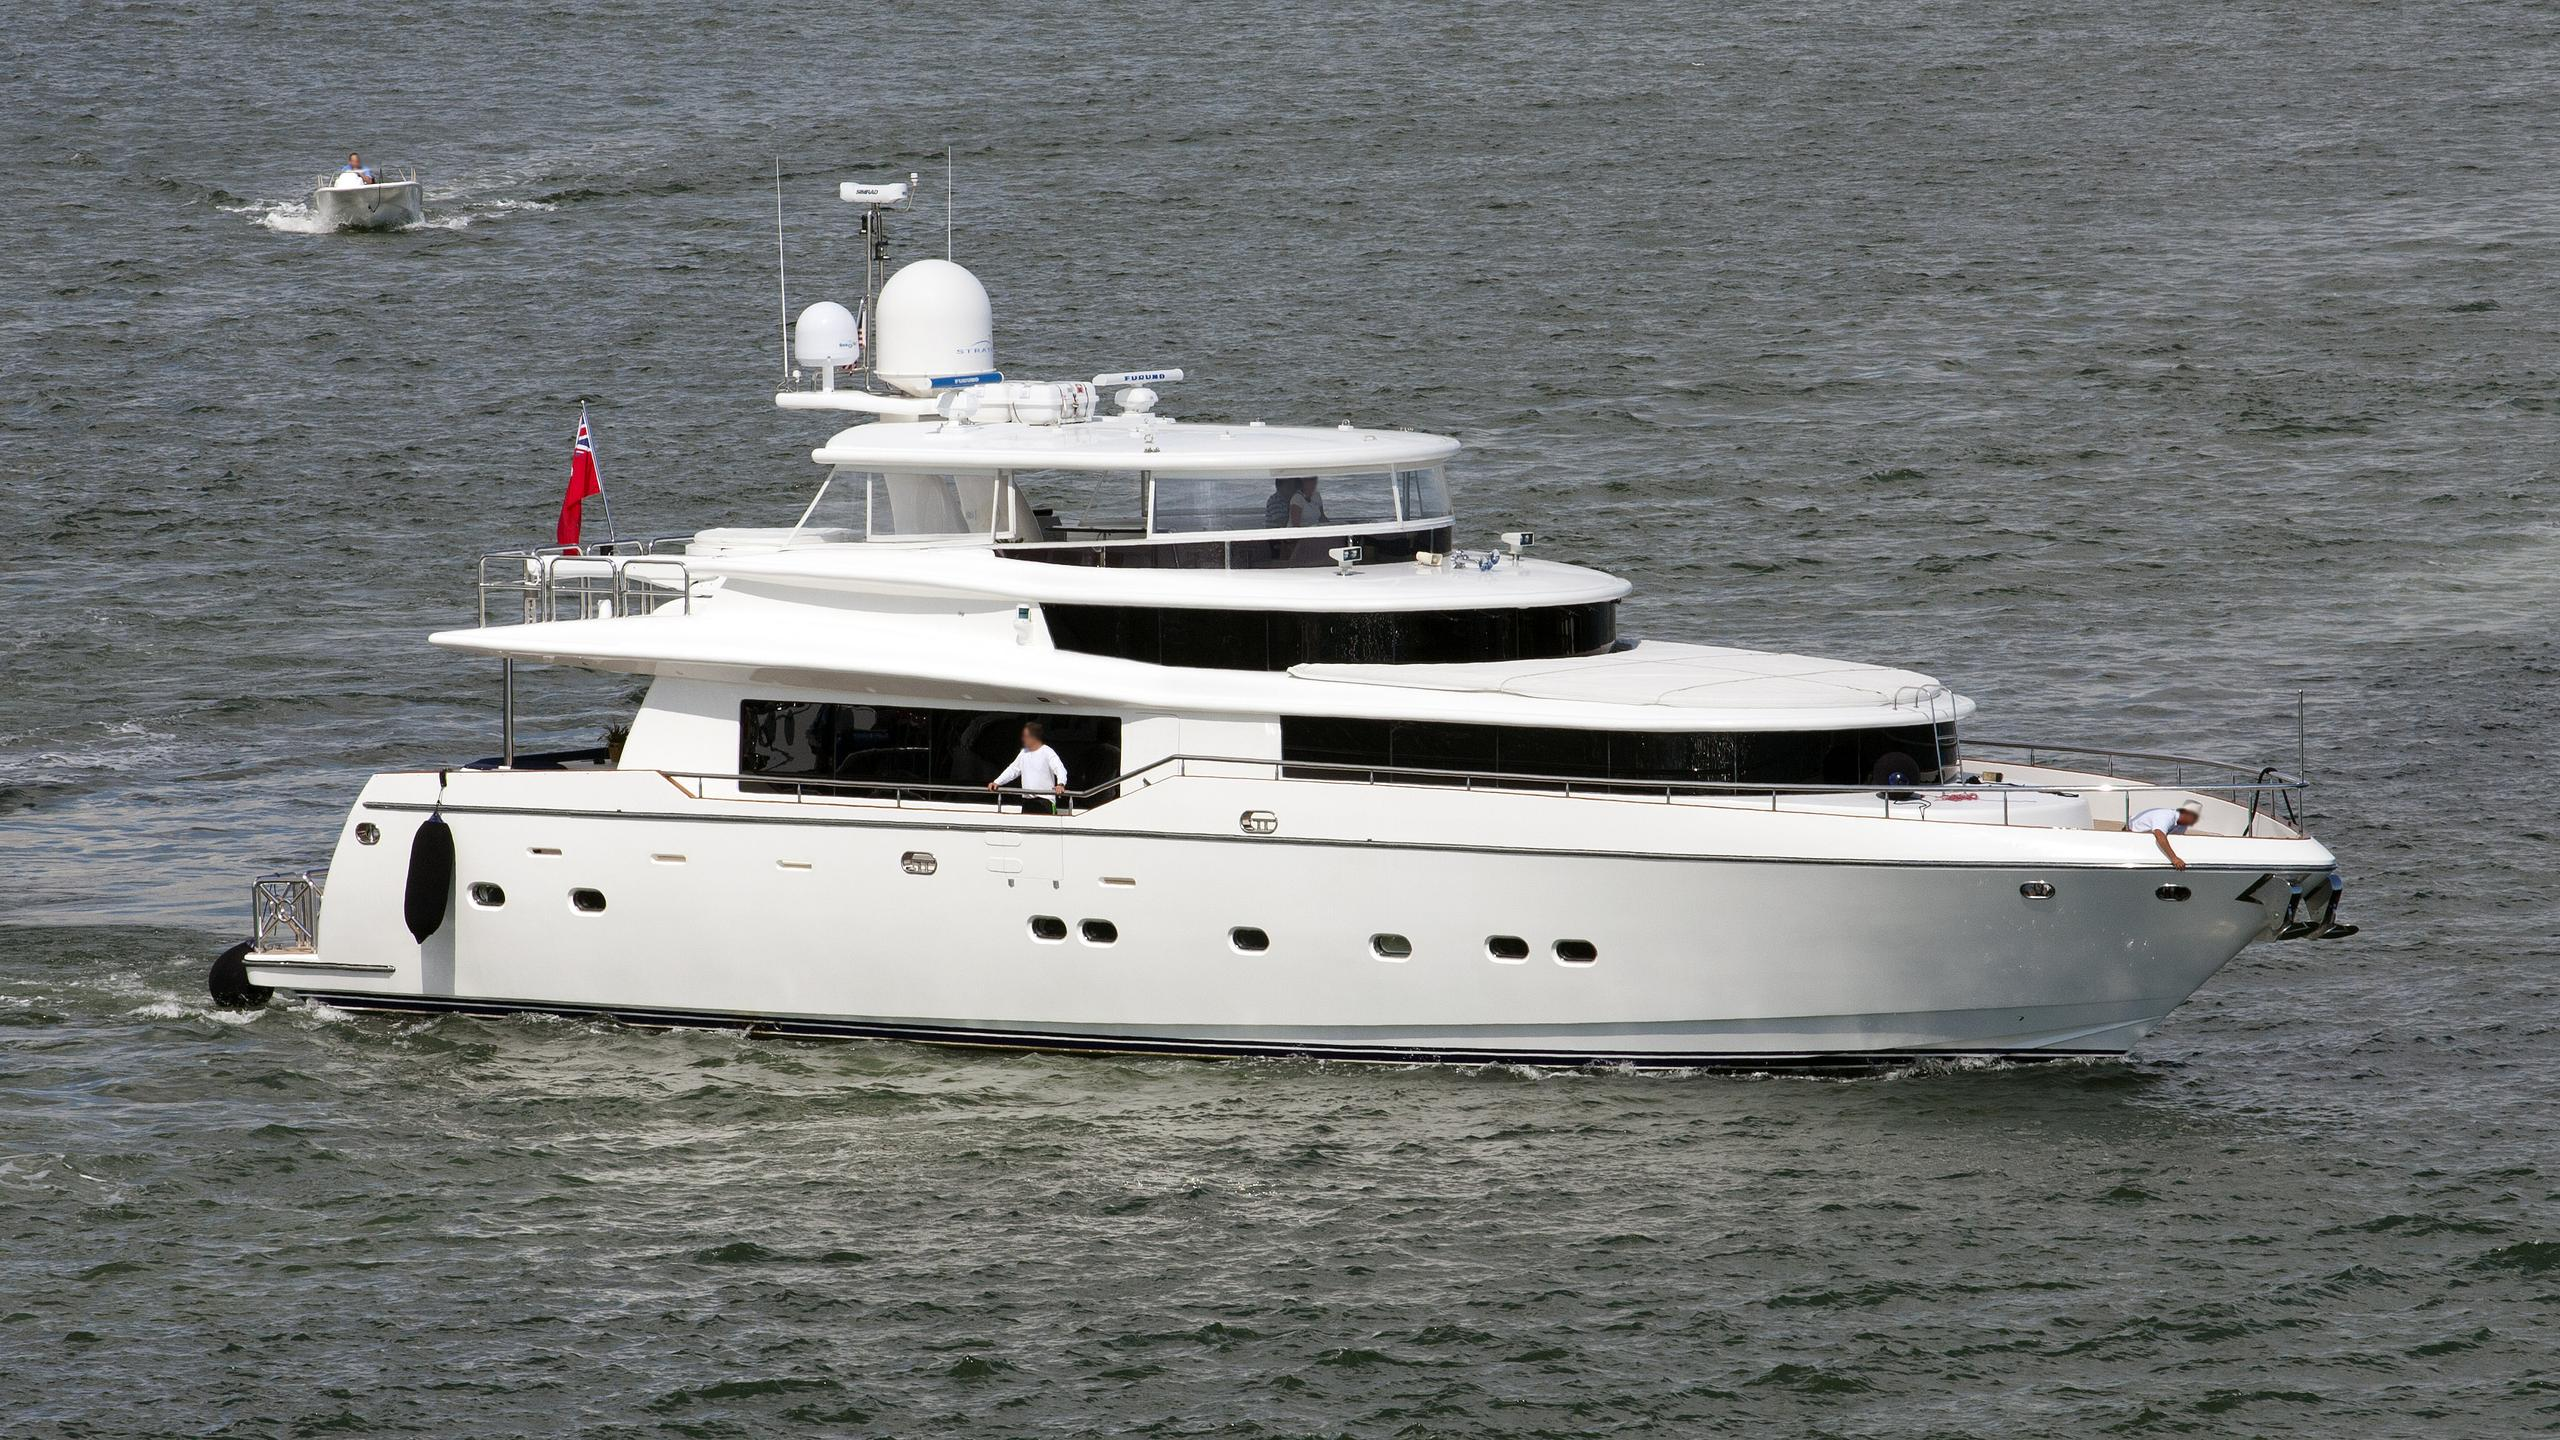 clarity-motor-yacht-johnson-87-2004-27m-profile